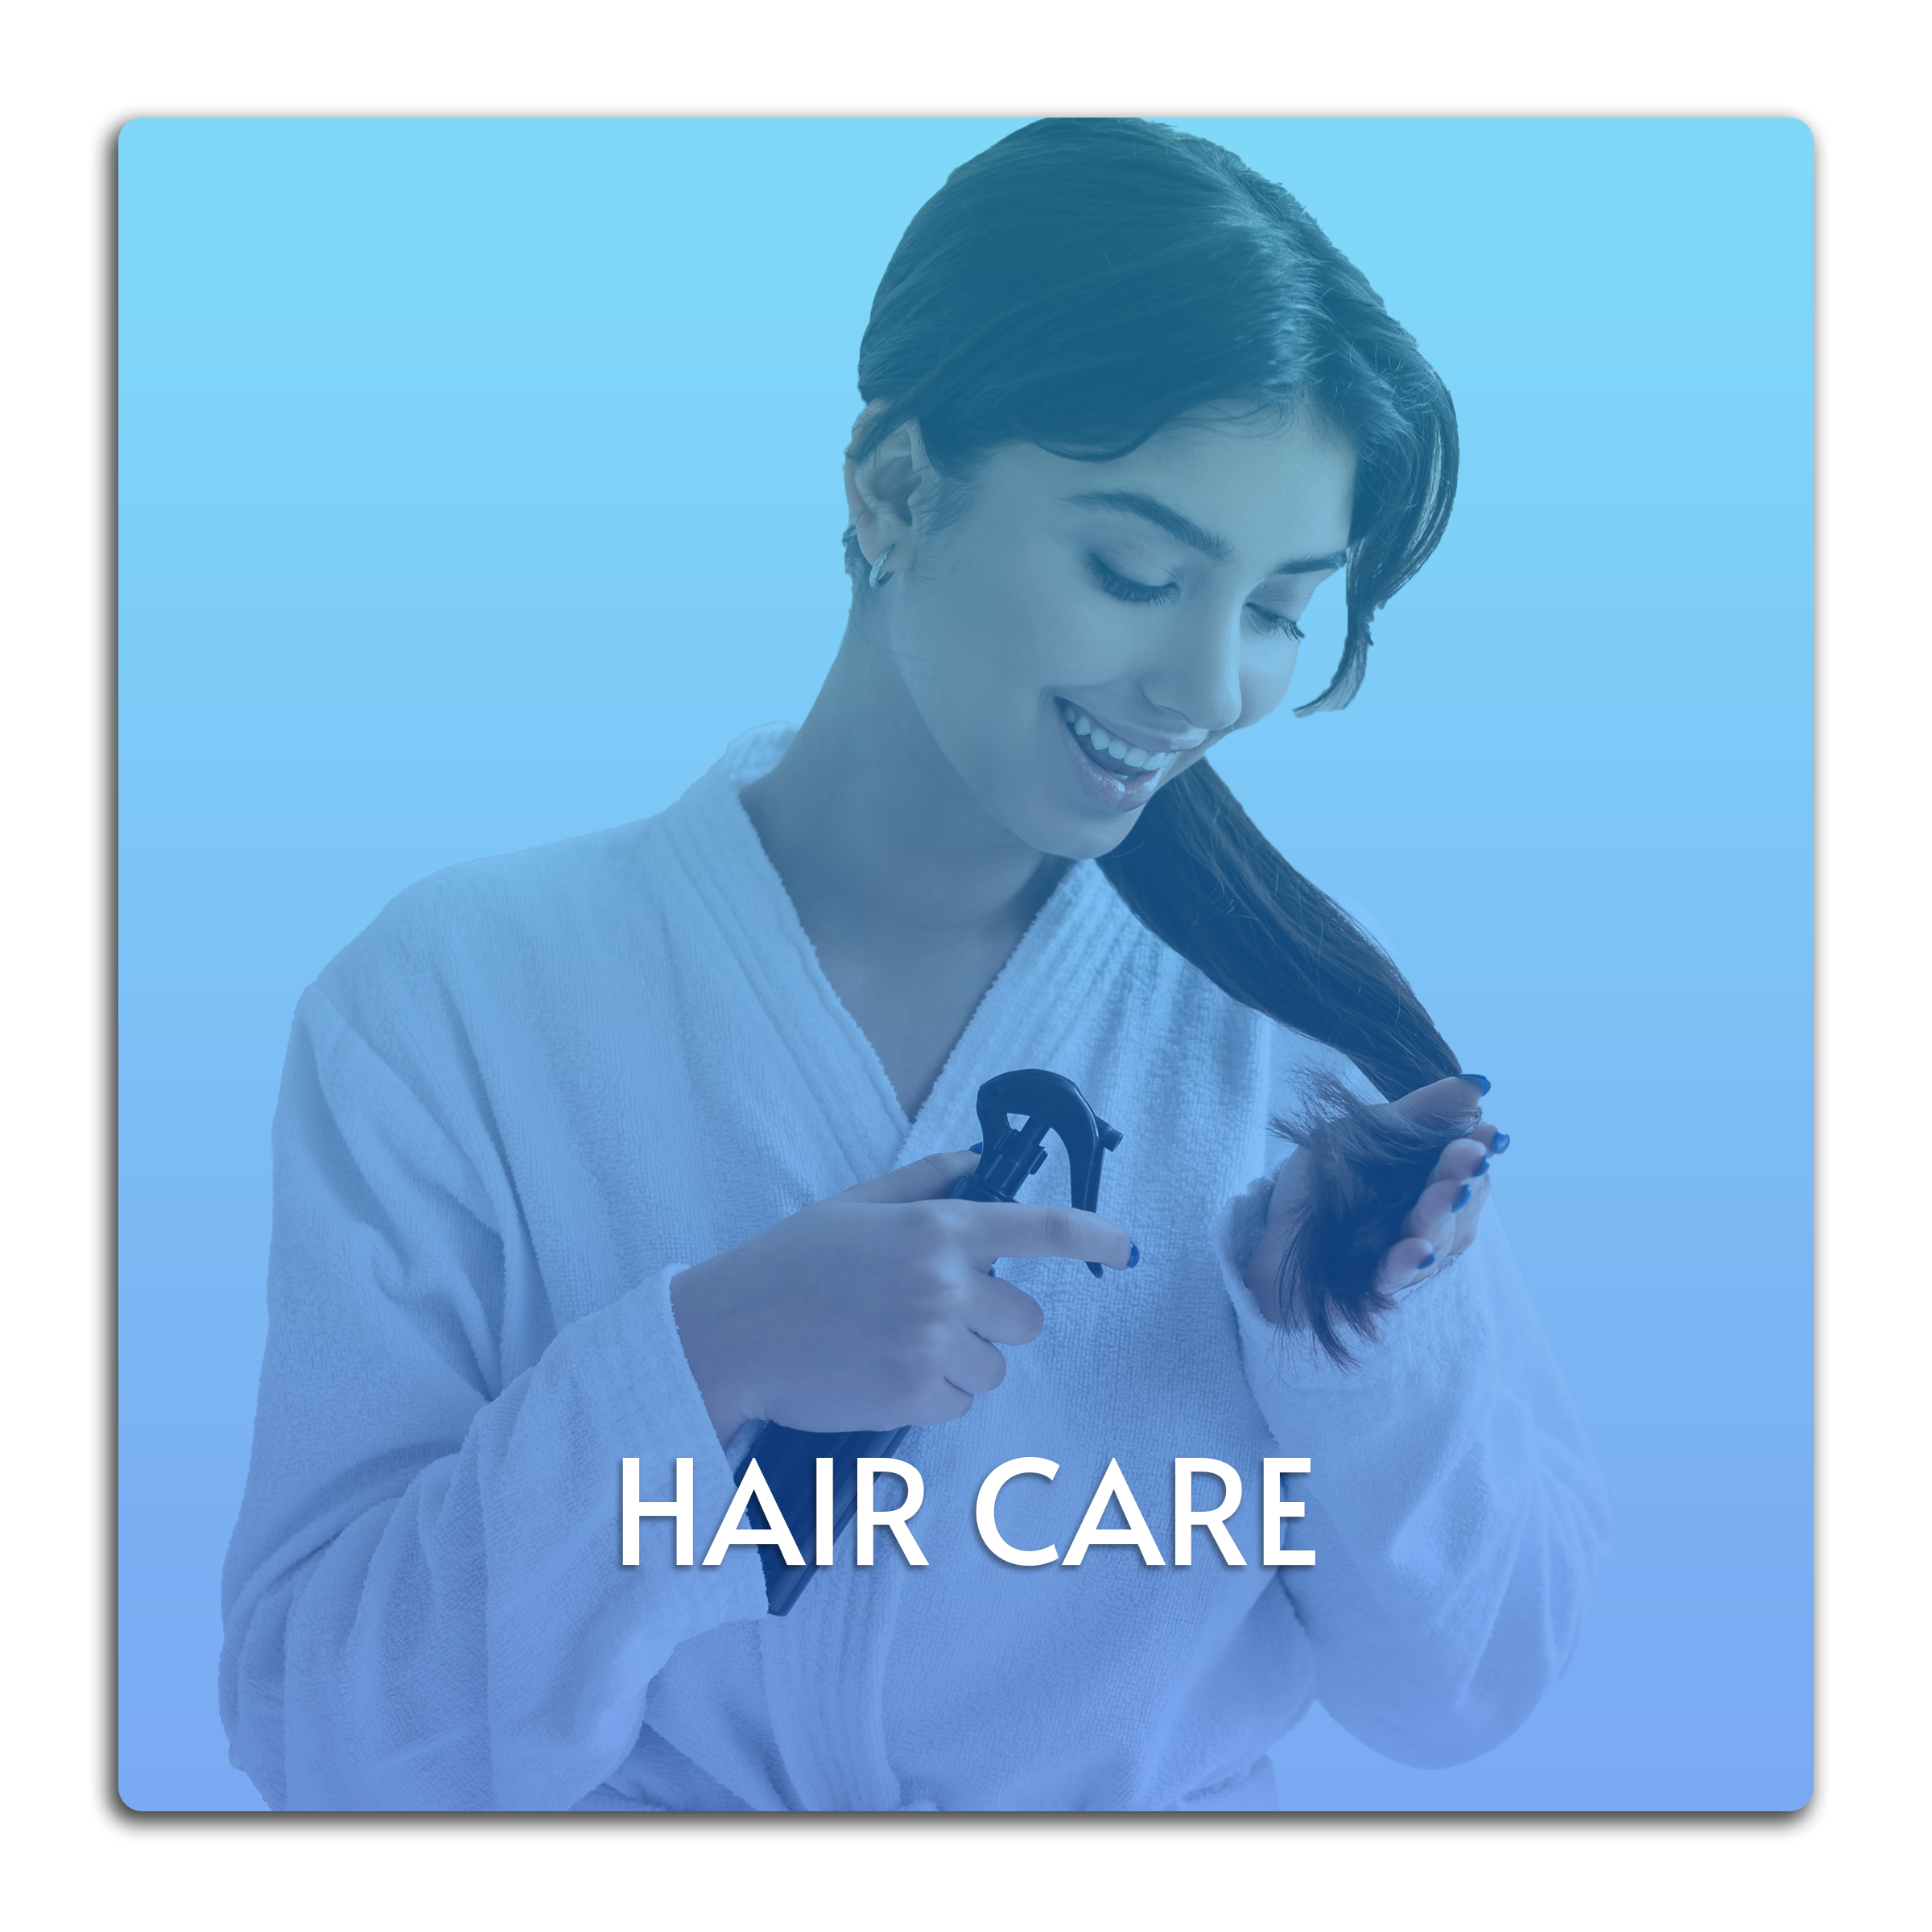 This image is a button linked to the Hair Care page